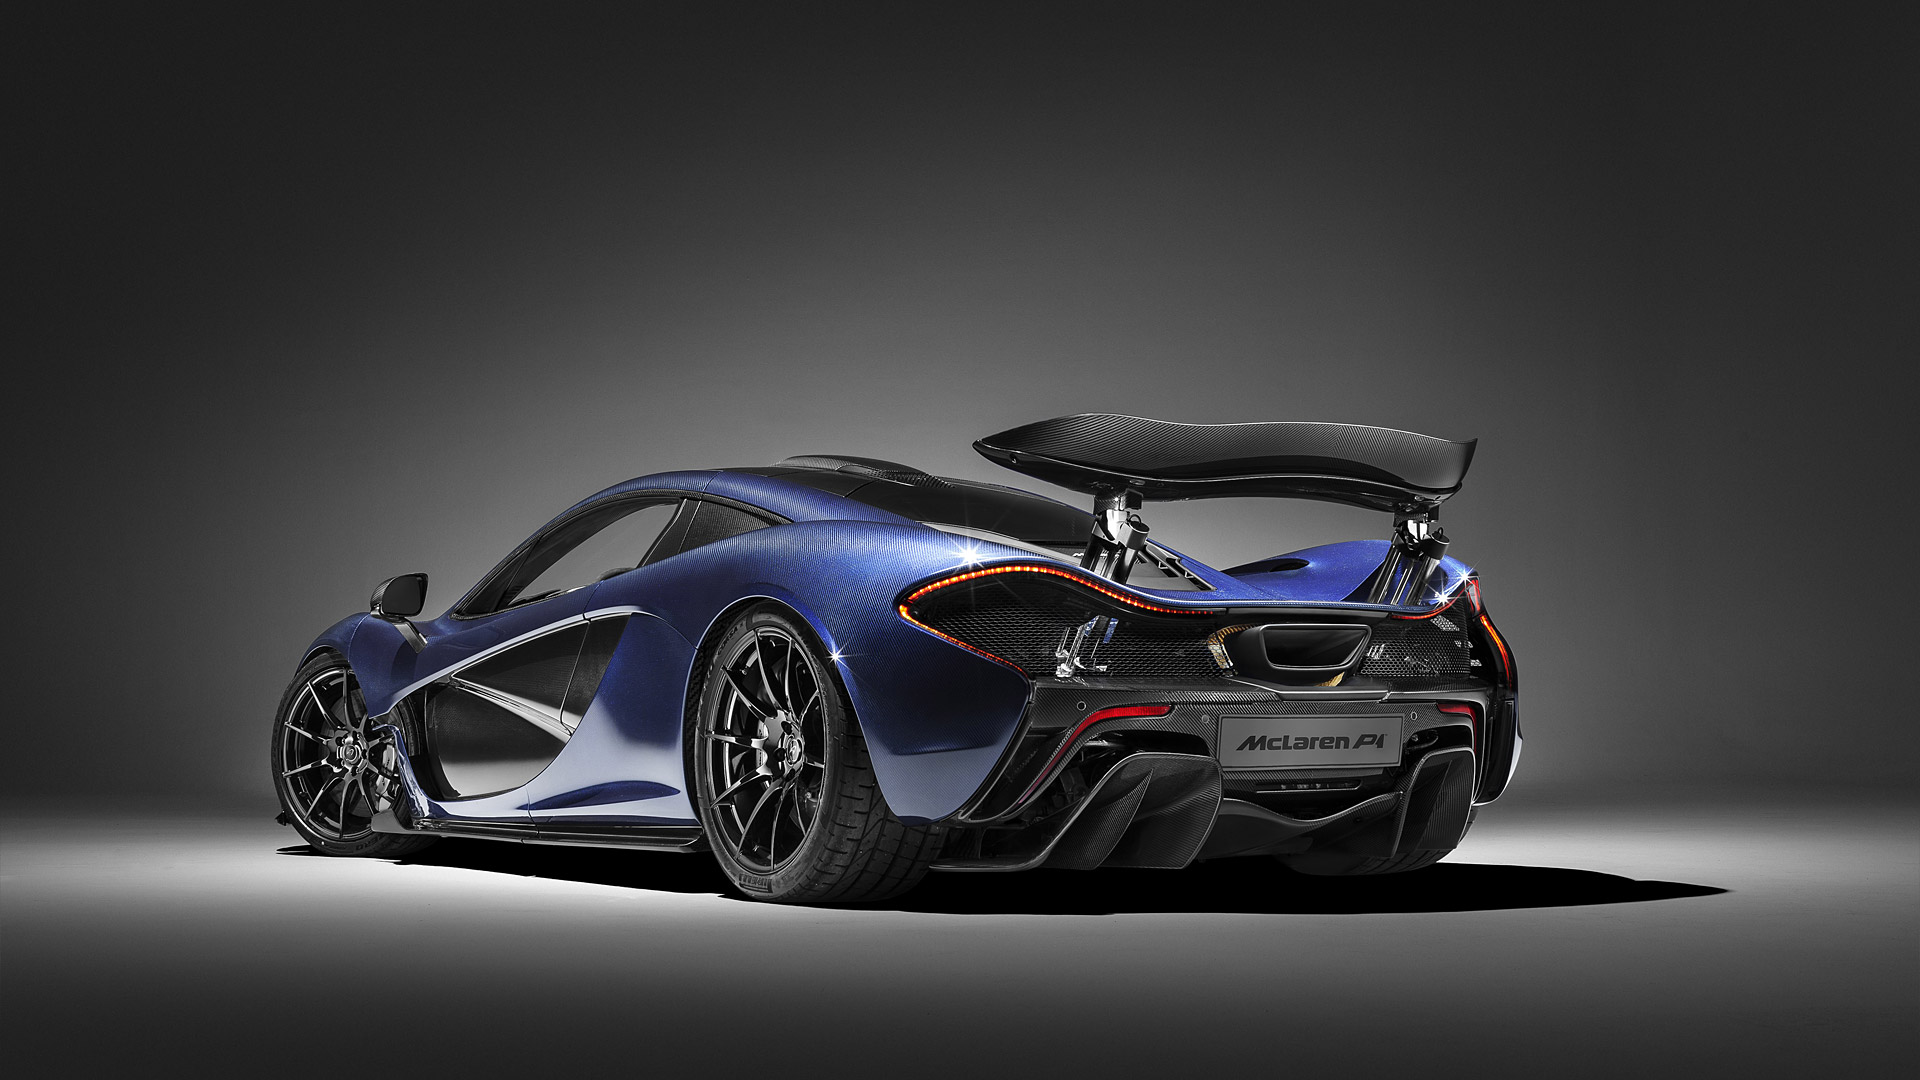 General 1920x1080 McLaren P1 car vehicle simple background spotlights